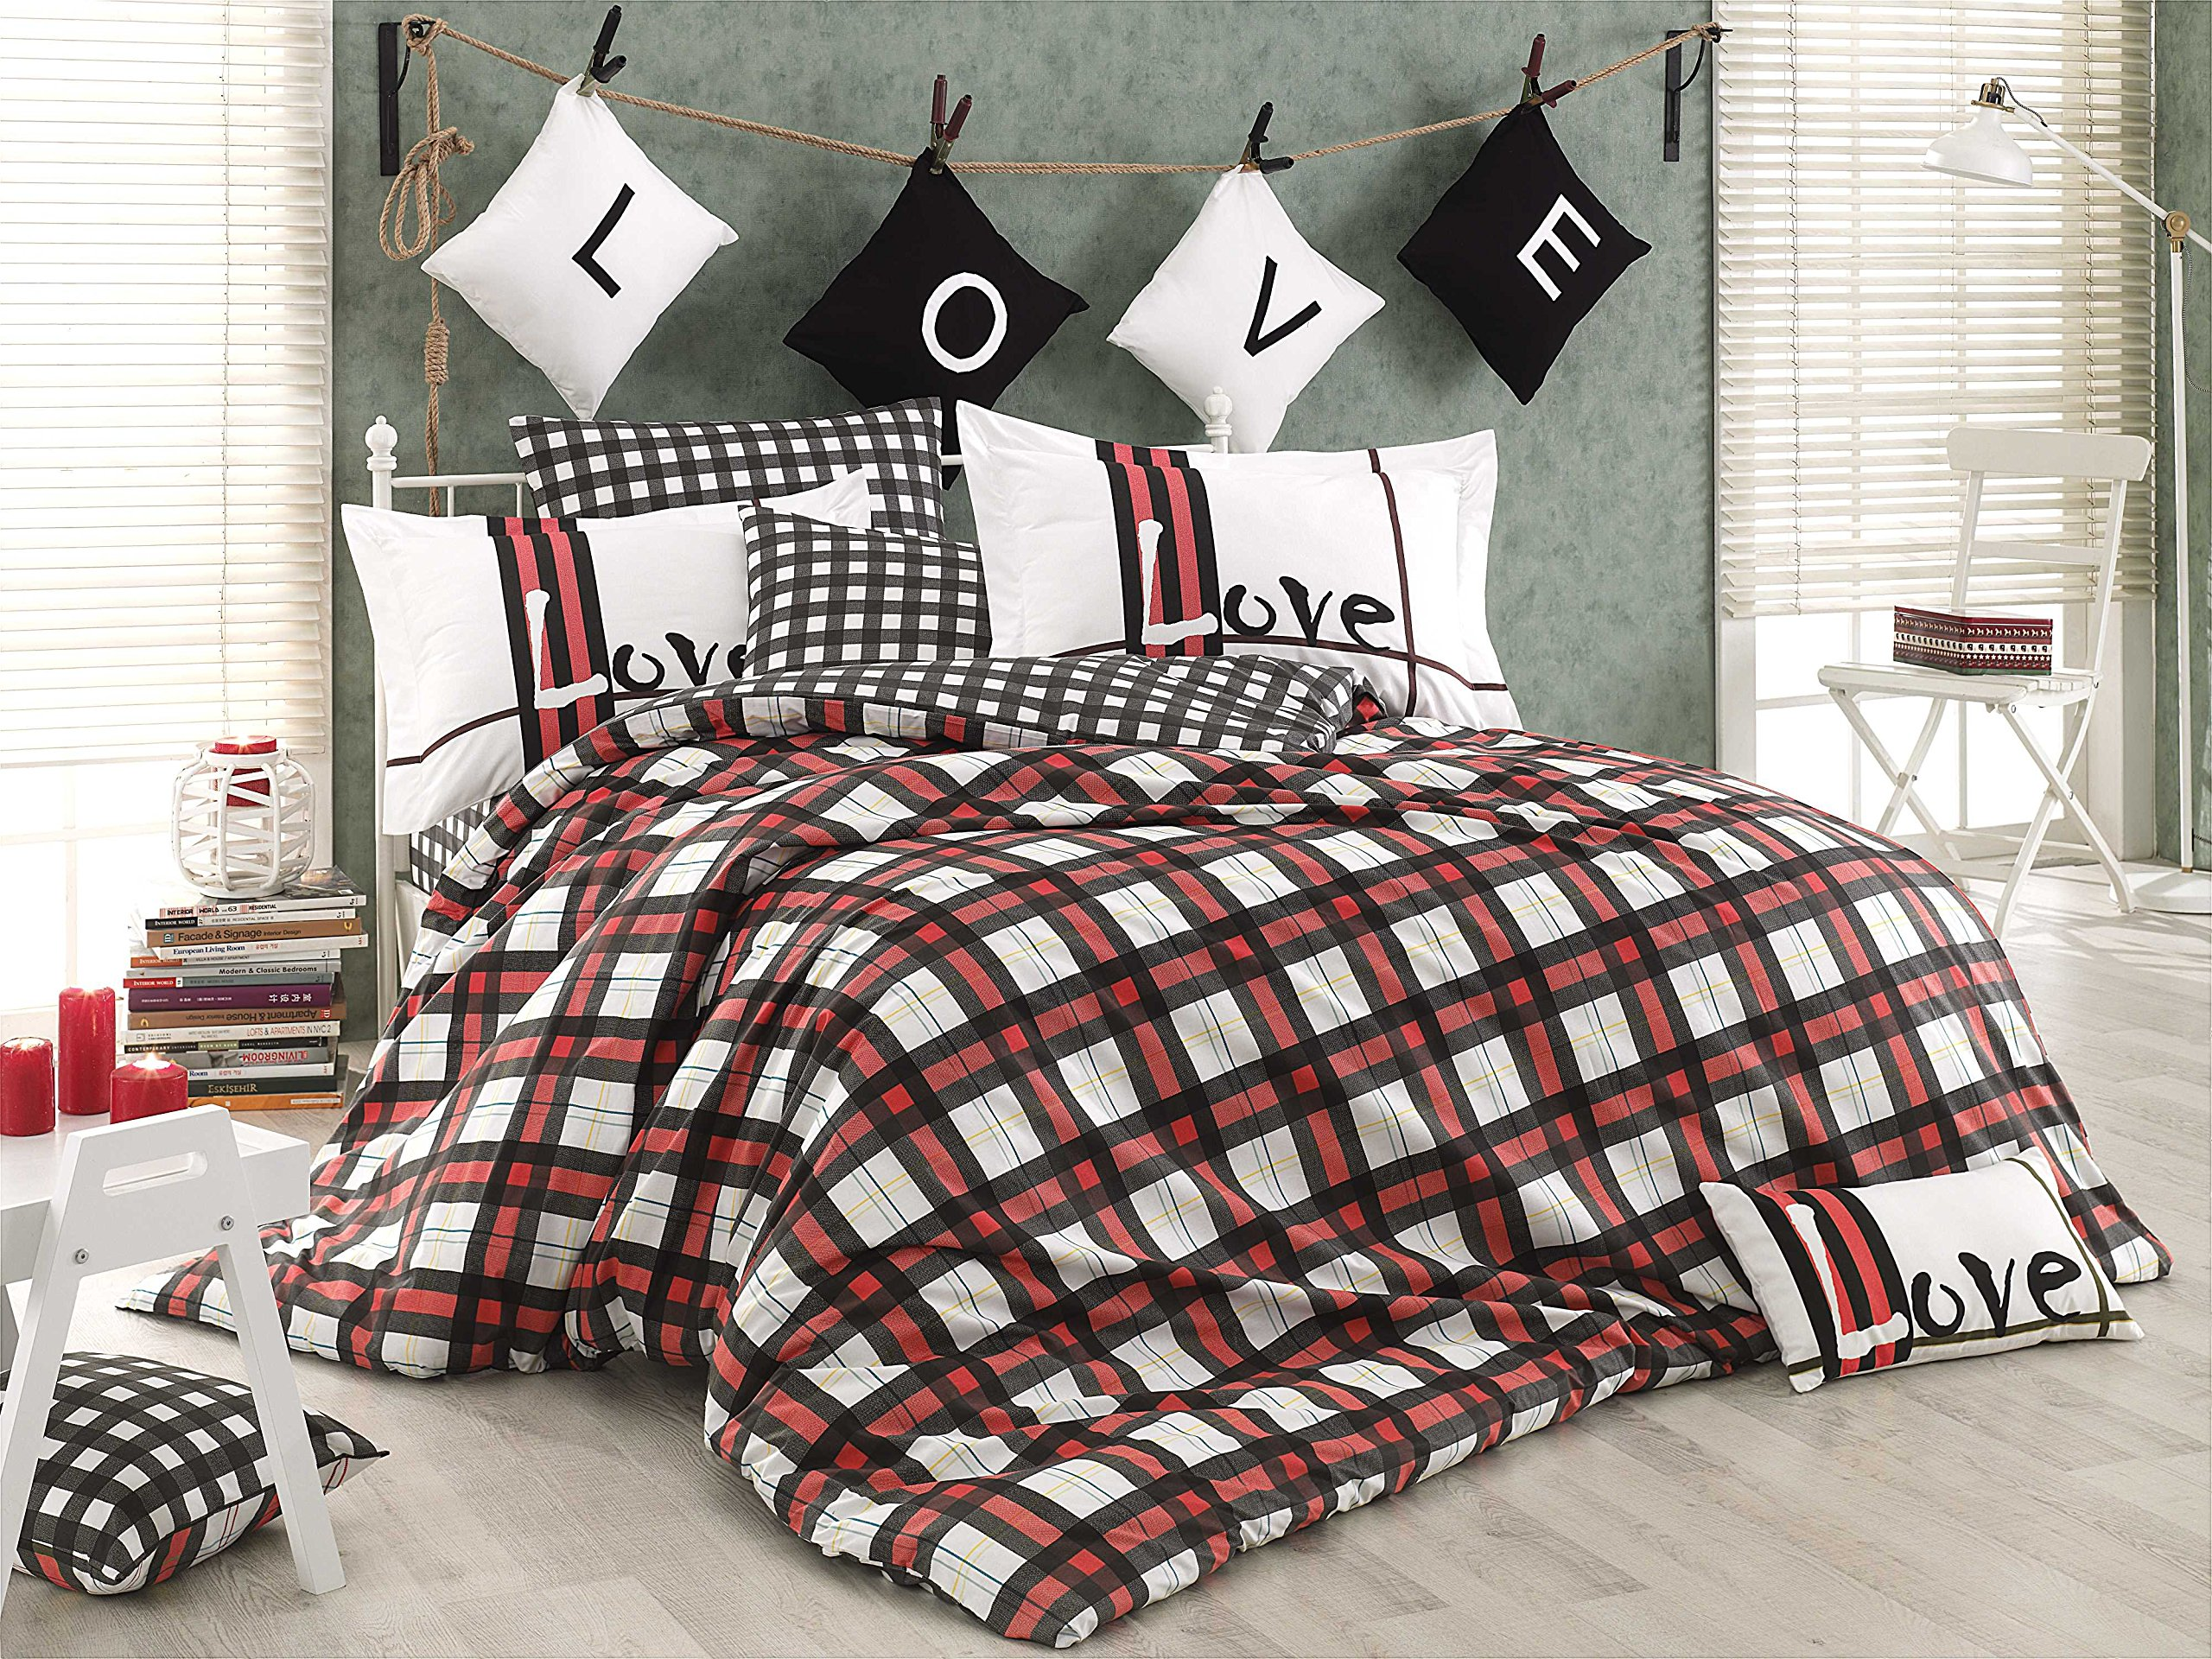 Gold Case - Love Checked 100% Turkish Cotton Poplin Duvet Cover Set - Full/Queen size, 4 piece - Made in Turkey - Chequred themmed unique item, Red-Twin size